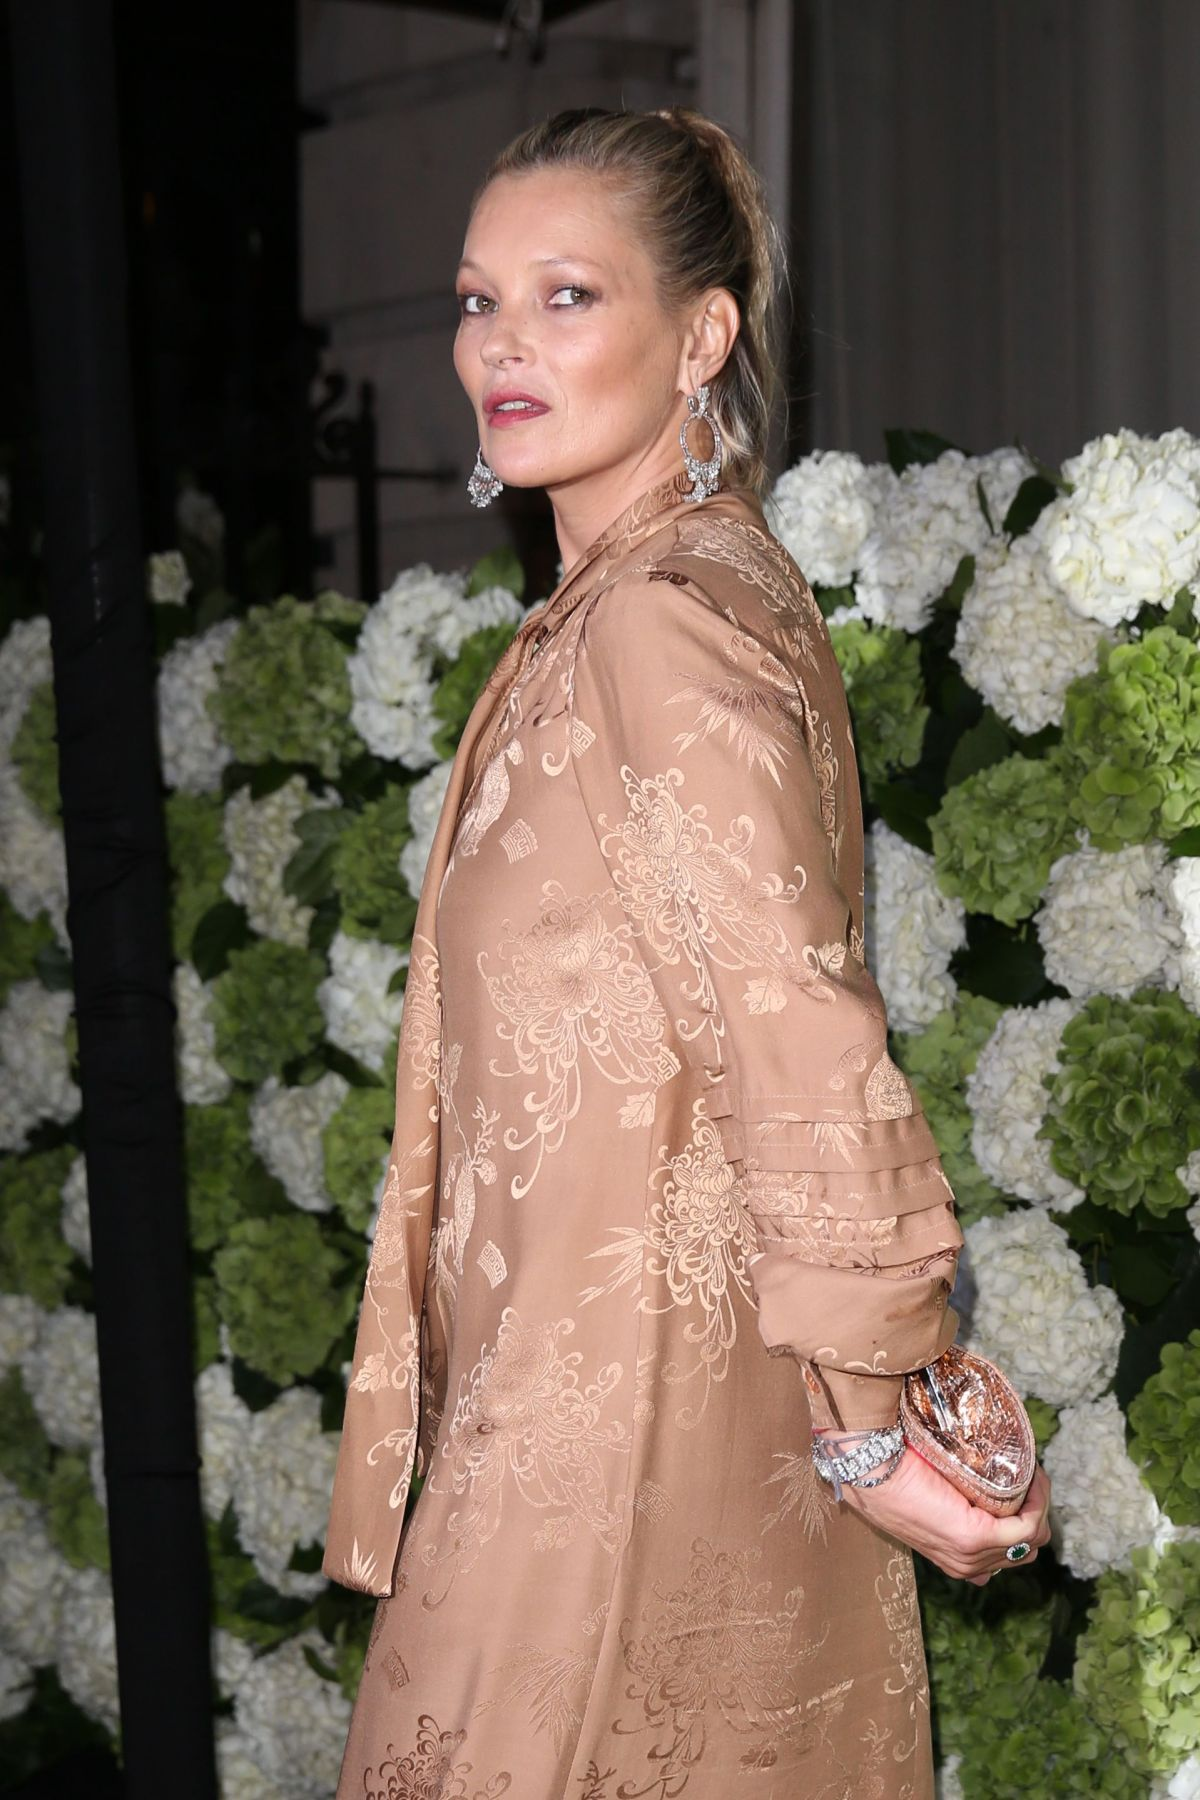 KATE MOSS at The Business of Fashion #bof500 Gala Dinner in London 09/19/2016